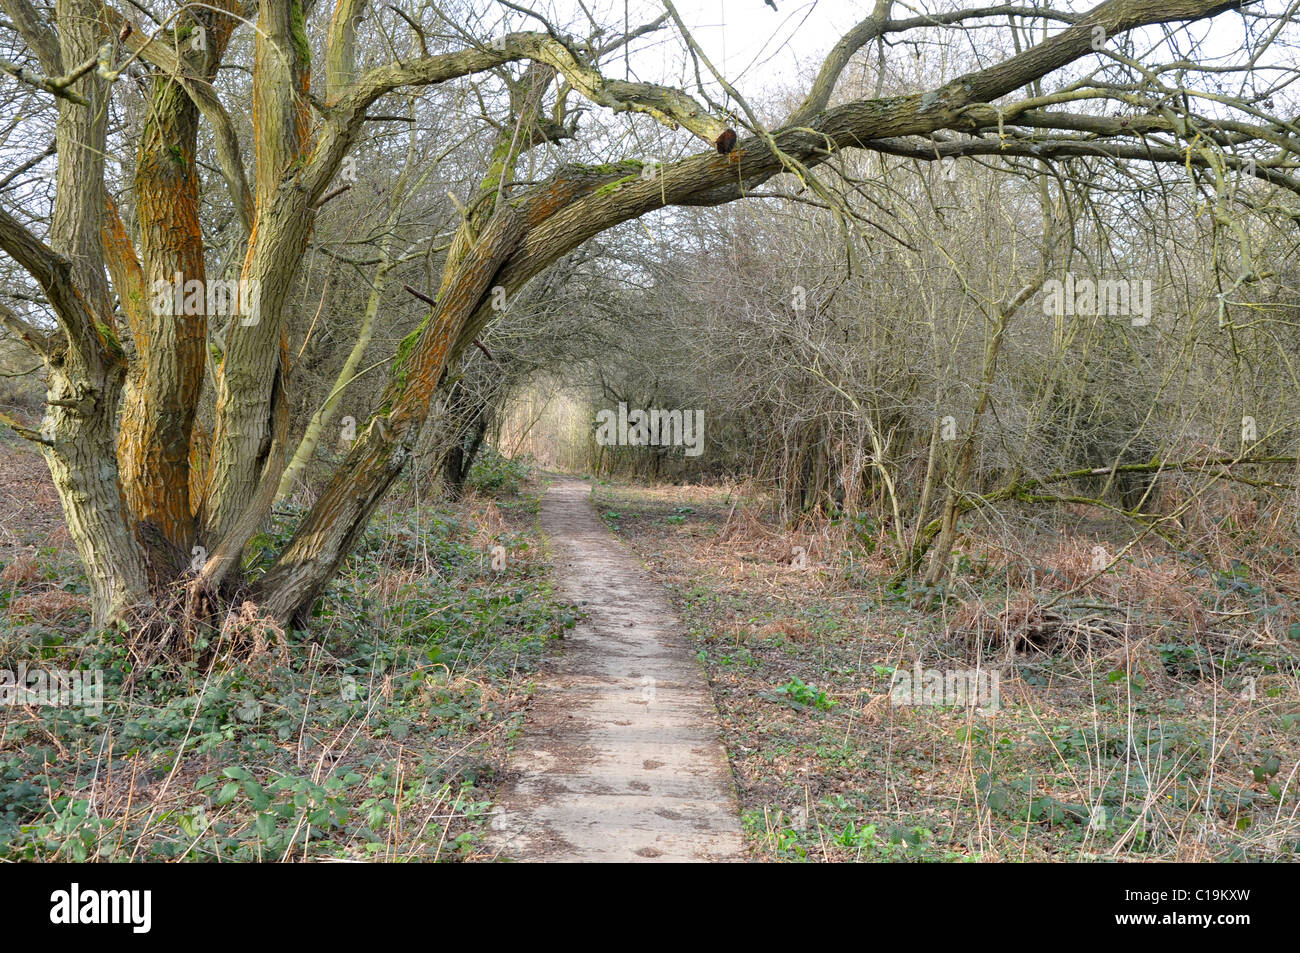 Countryside walk in North Leigh, near Witney, Oxfordshire - Stock Image